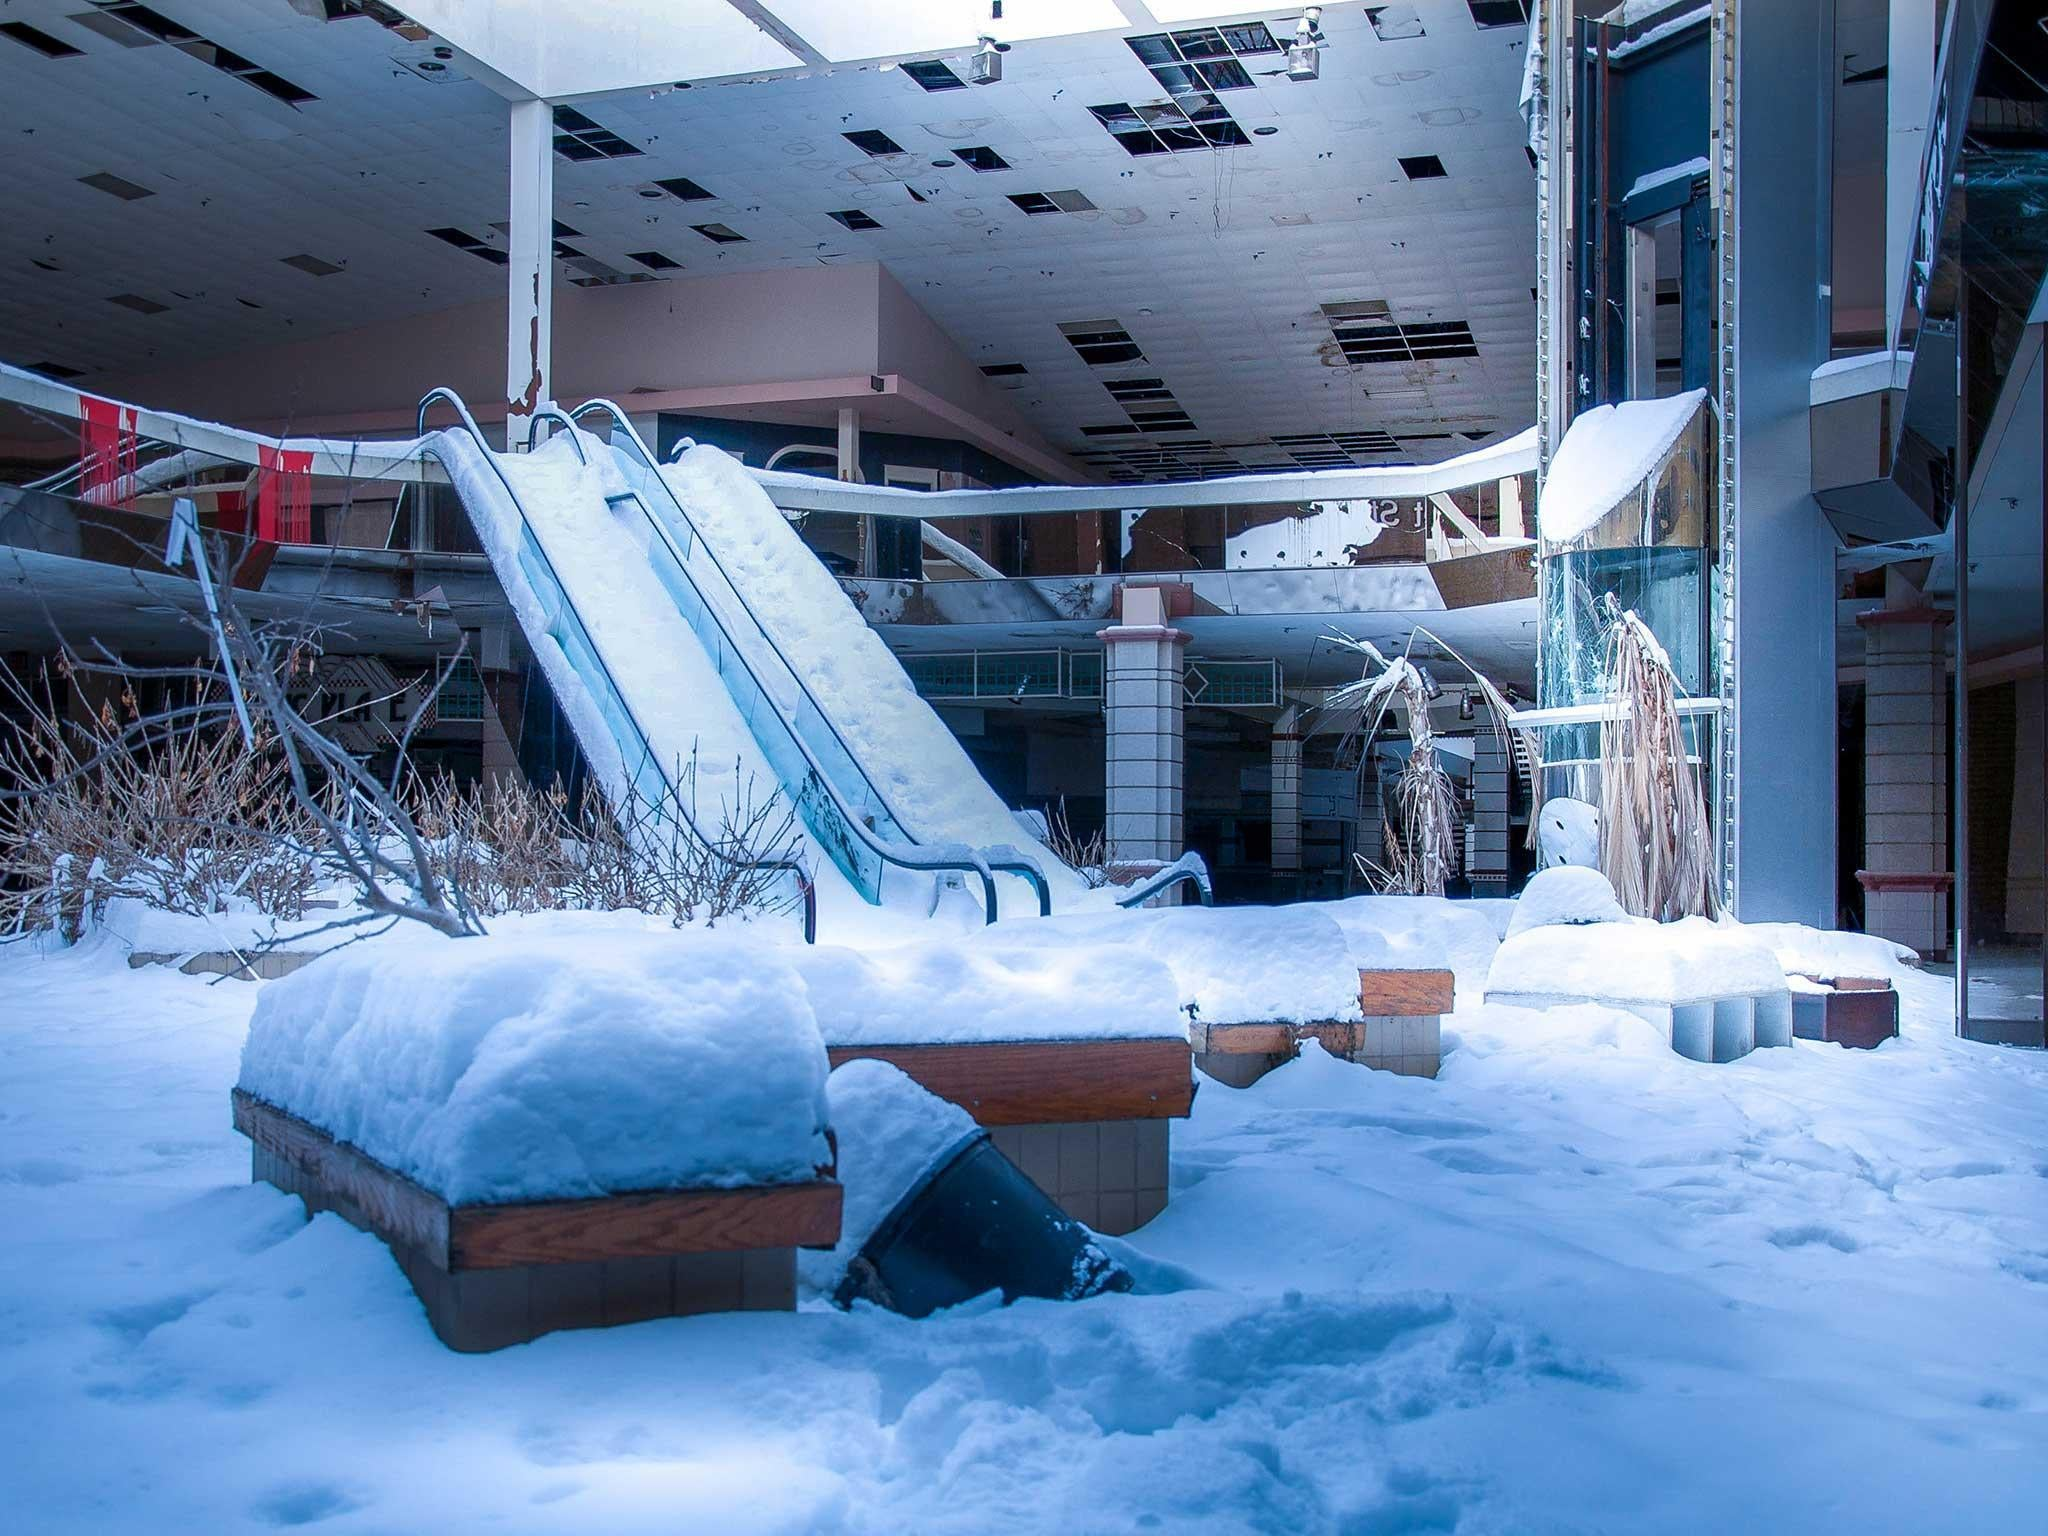 Eerie Images Show America S Deserted Theme Parks Abandoned Shopping Malls And Forsaken Train Stations The Independent The Independent